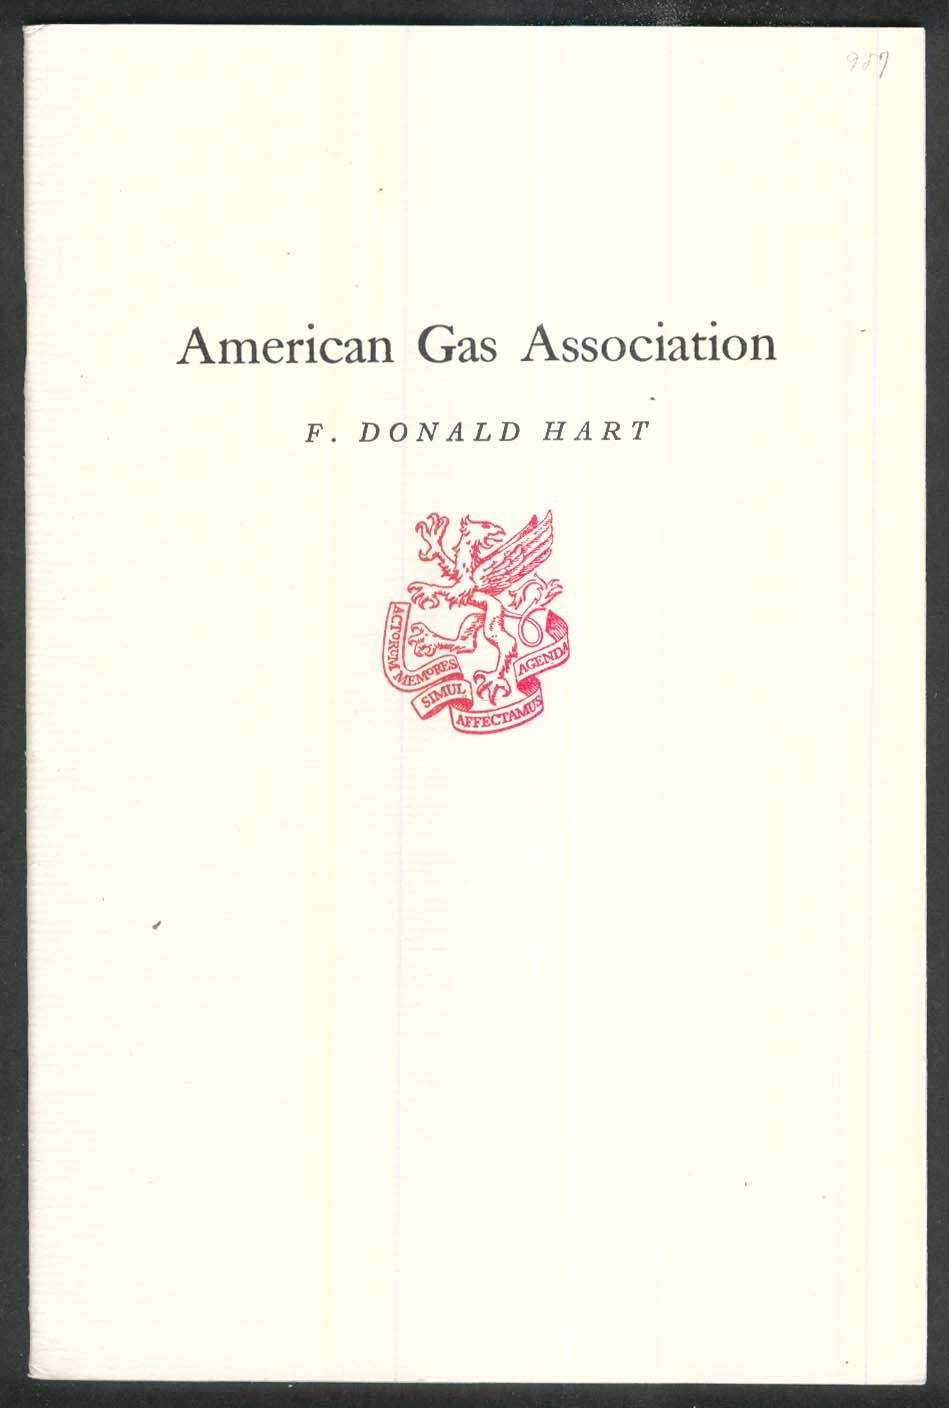 NEWCOMEN #987 American Gas Association Donald Hart 2 1974 1st Printing